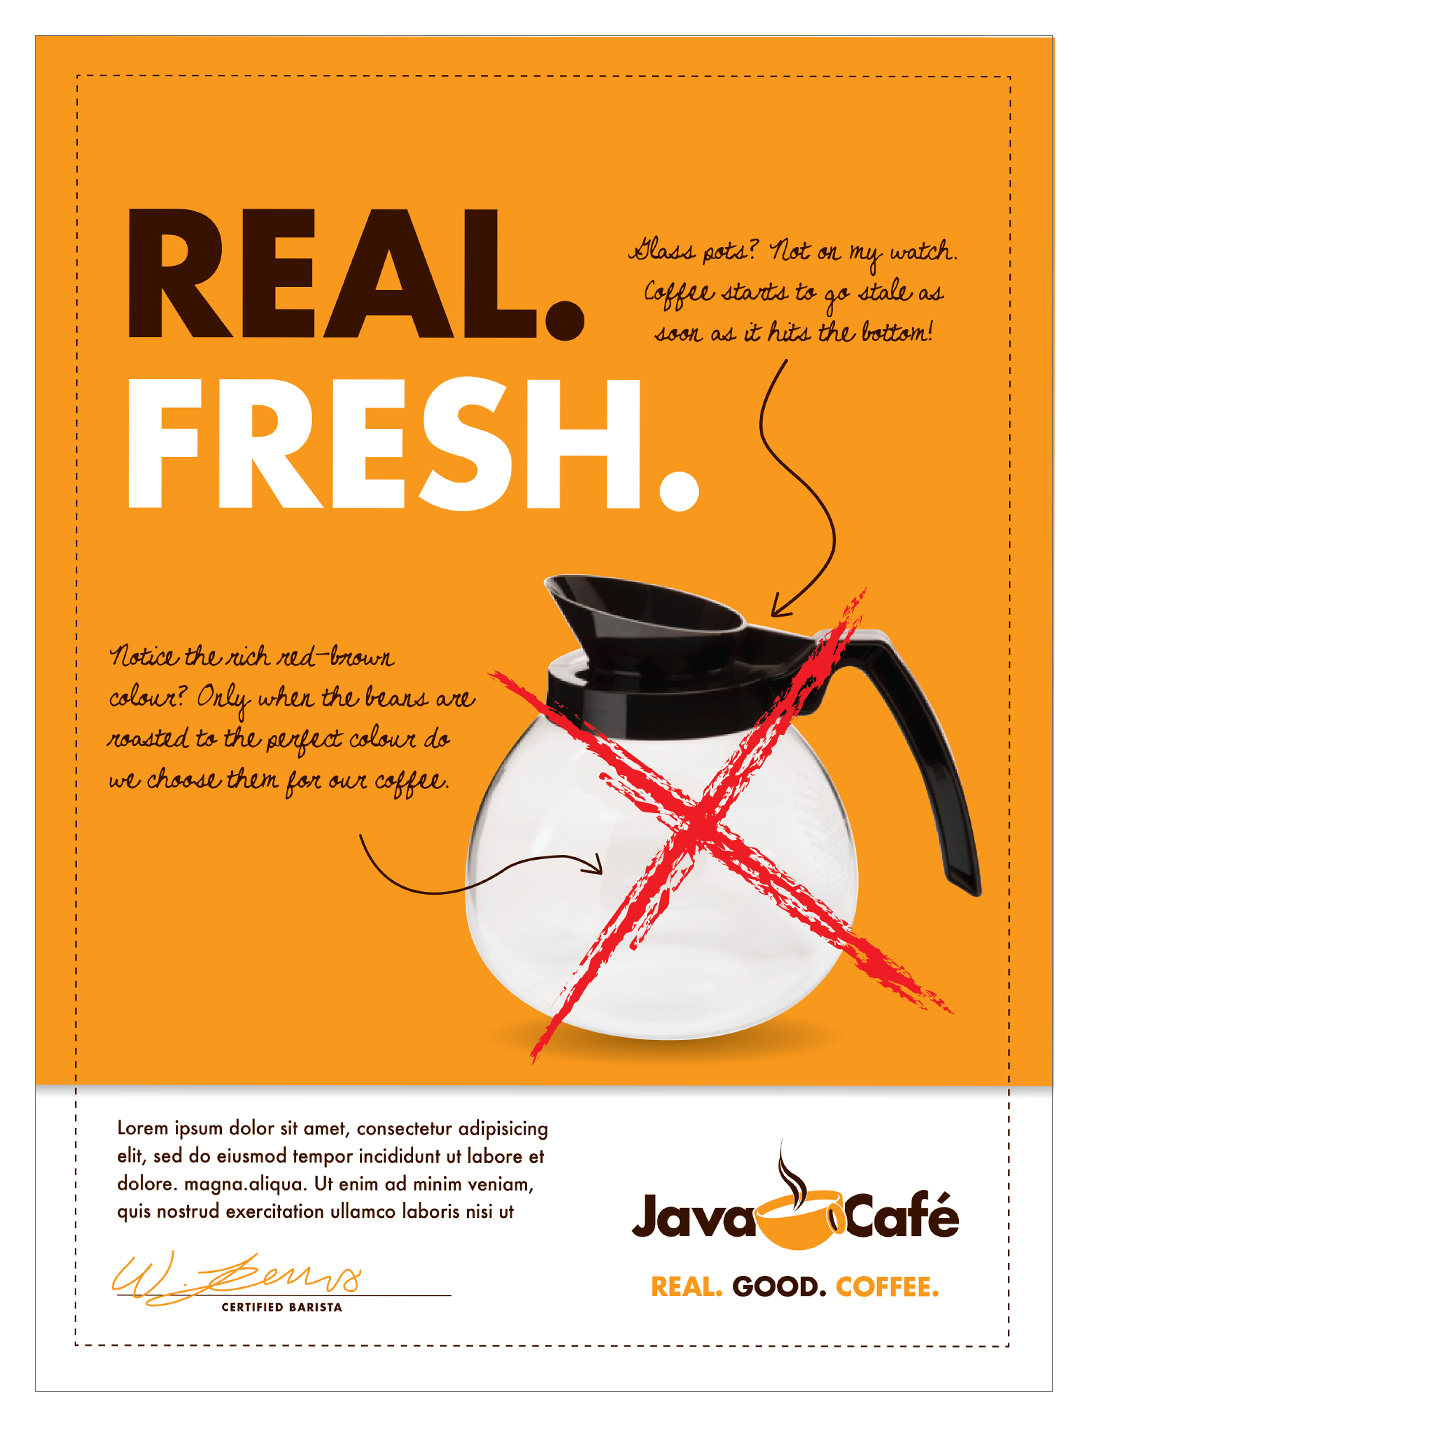 stir-images-shell-javacafe-ad1.png